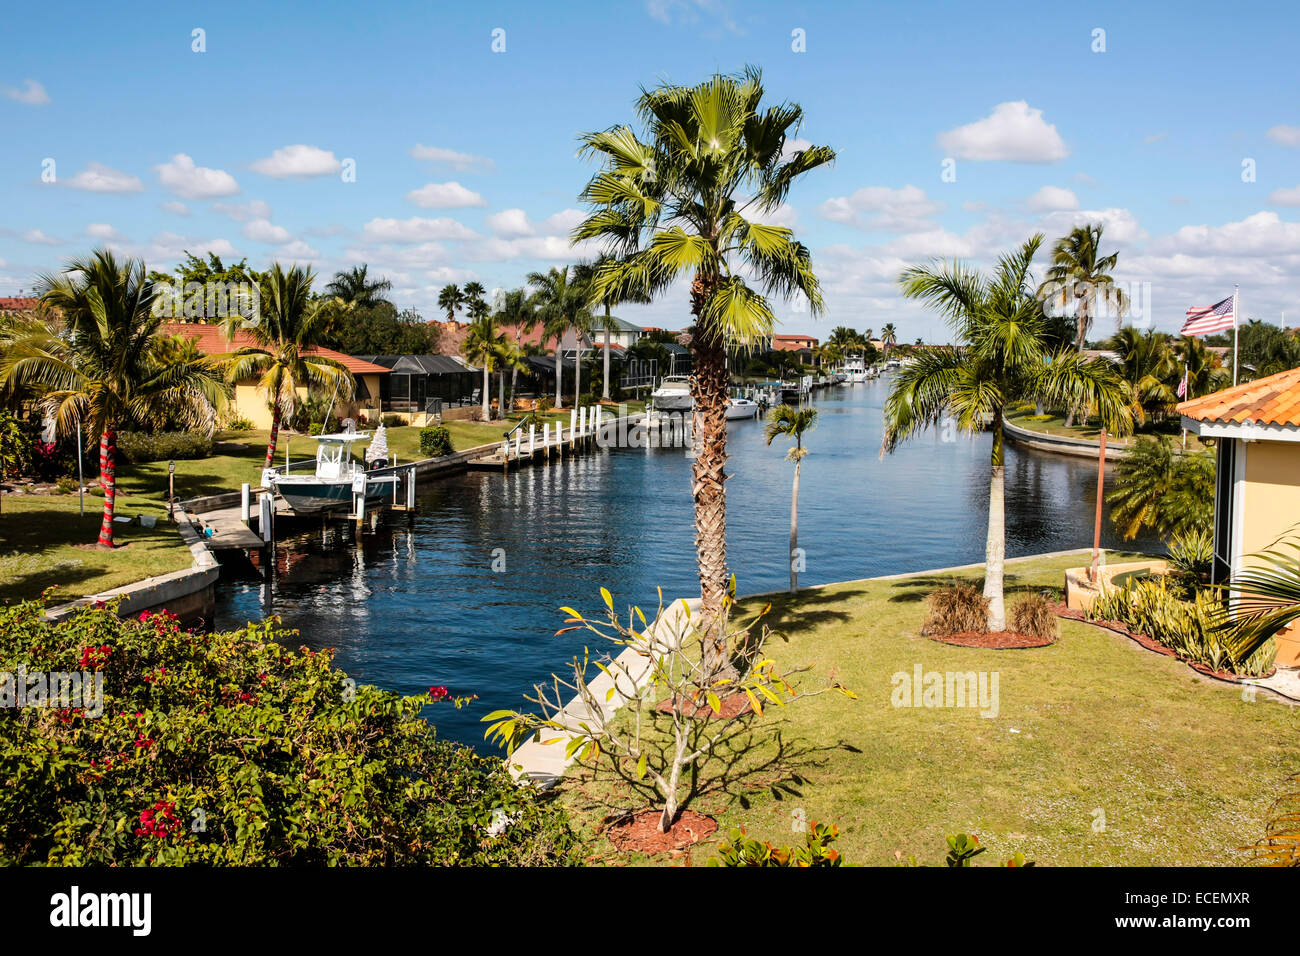 Residential properties with boat lifts and landings in the waterways of Punta Gorda Island, Florida - Stock Image